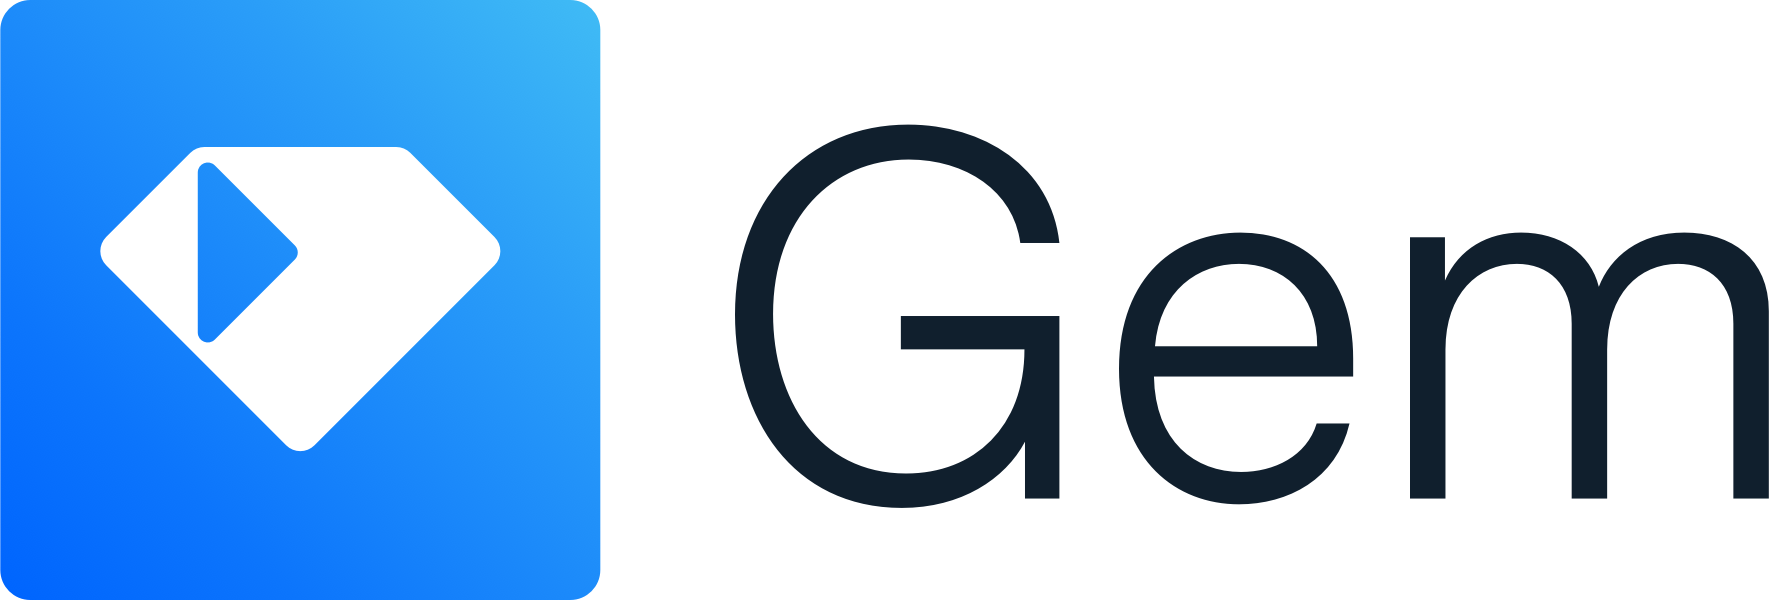 The Gem logo